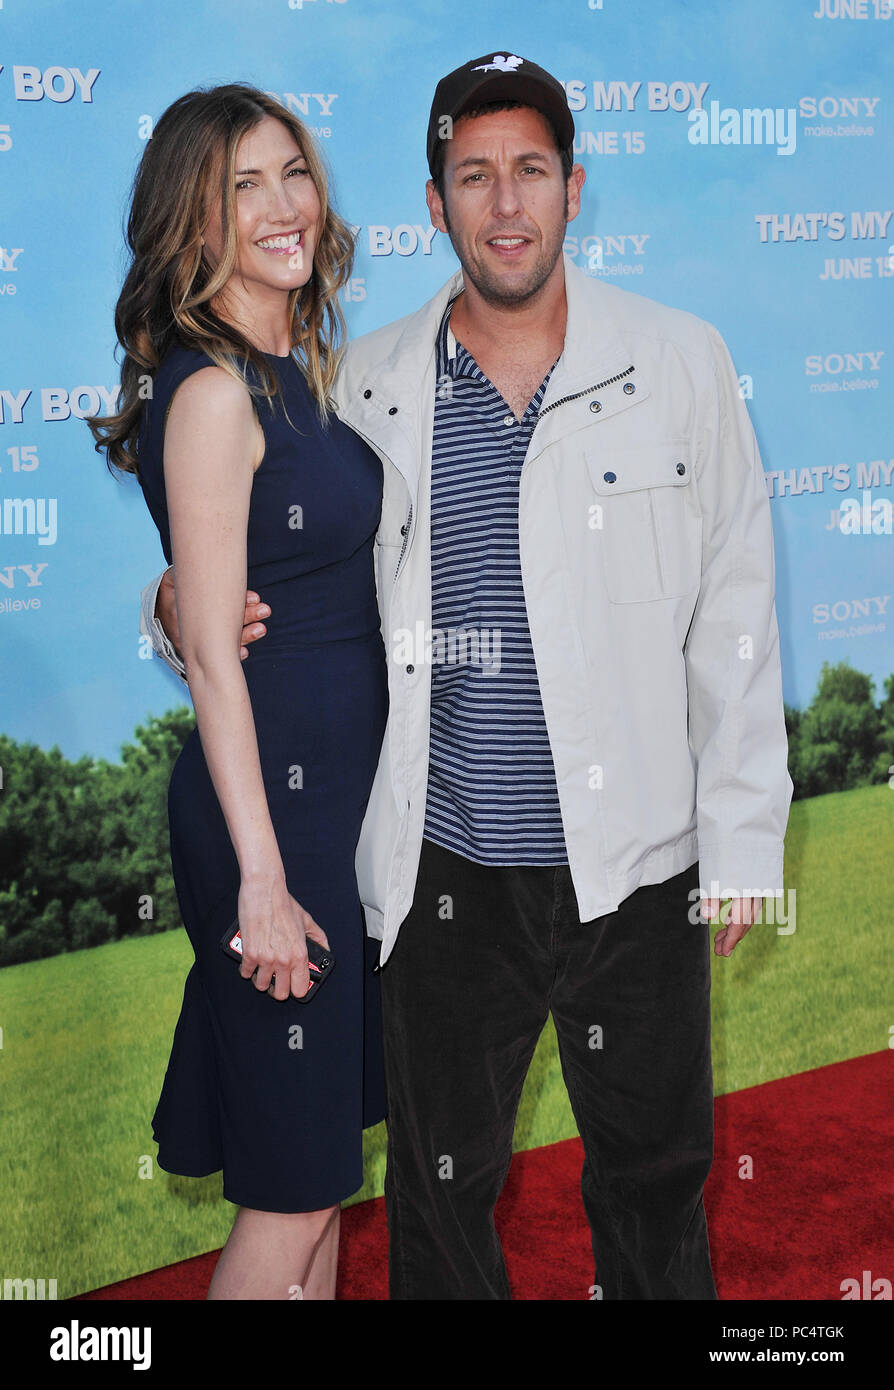 Adam Sandler and wife Jackie at the That's My Boy Premiere